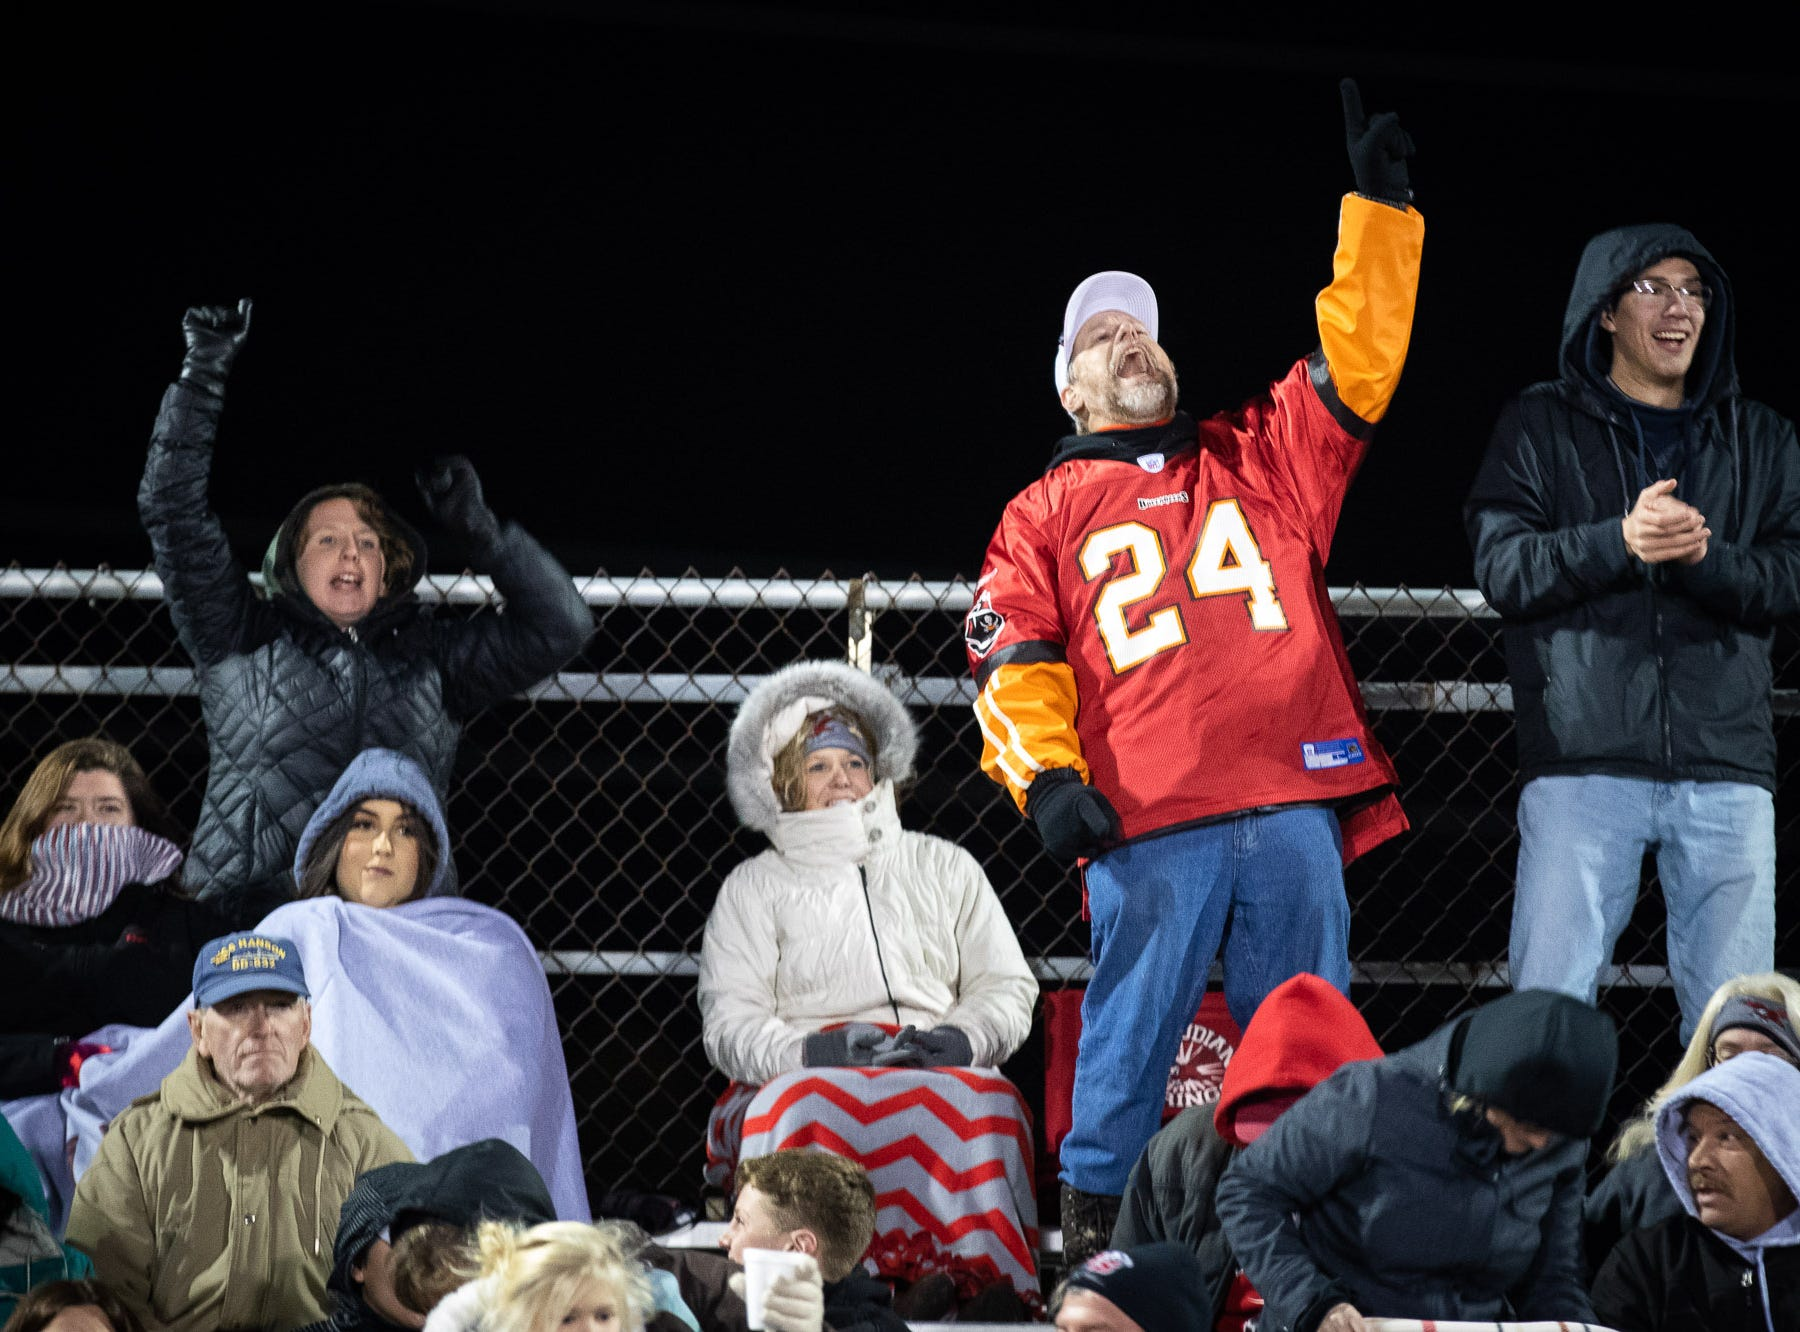 Bermudian Springs fans cheer during the first half of the District 3 Class 3A championship game between Bermudian Springs and Middletown, Saturday, Nov. 17, 2018, at Cedar Crest High School. Middletown leads Bermudian Springs 28-6 at the half.